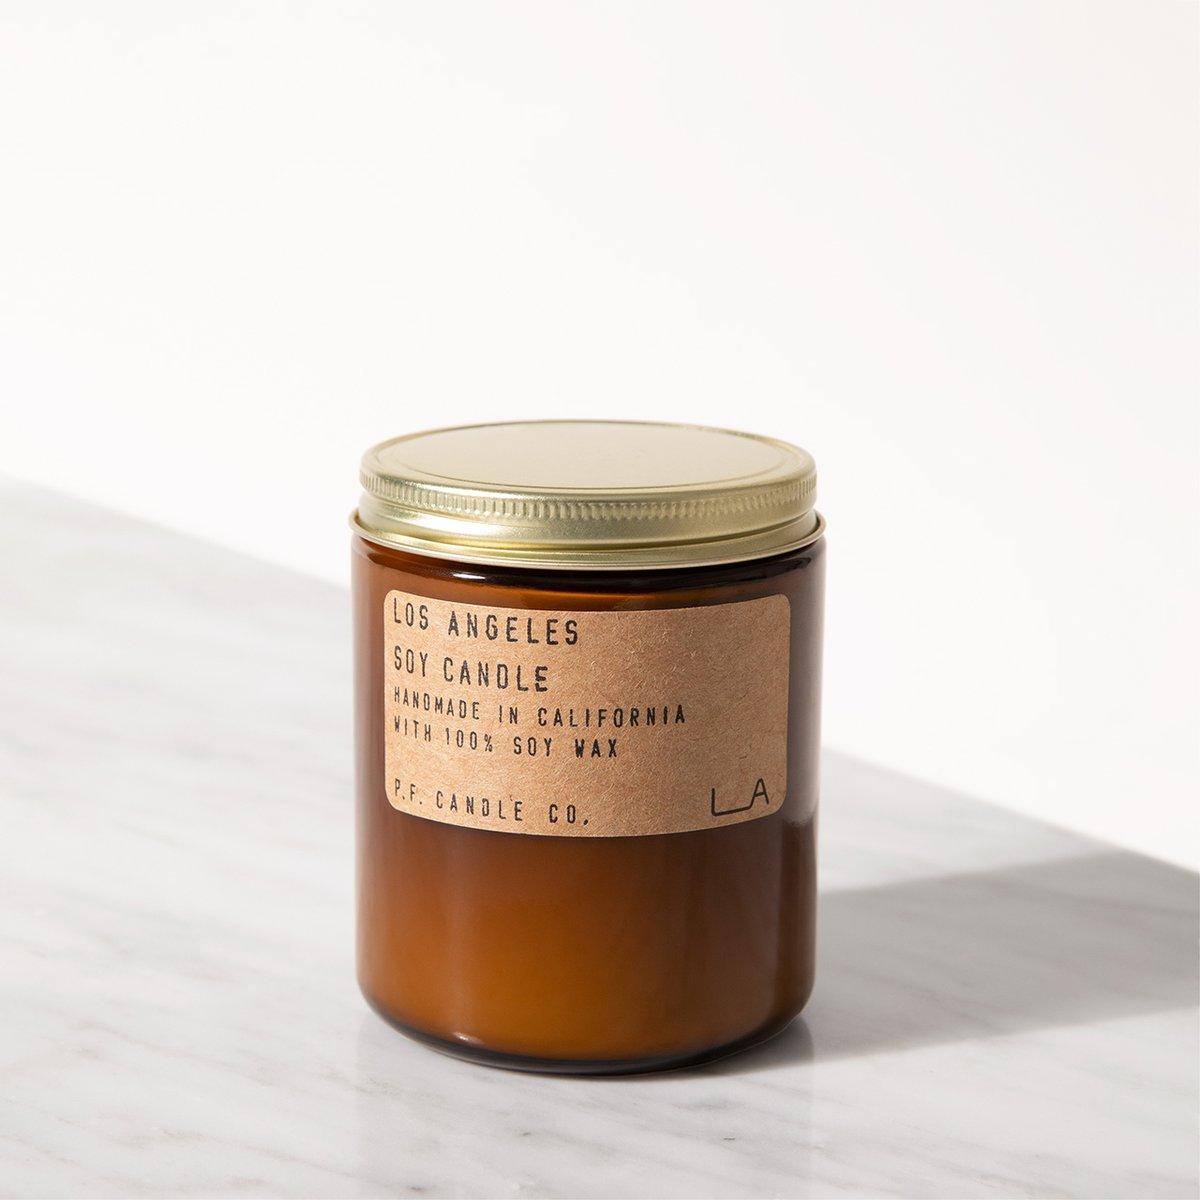 Los Angeles Candle, P.F Candle Co